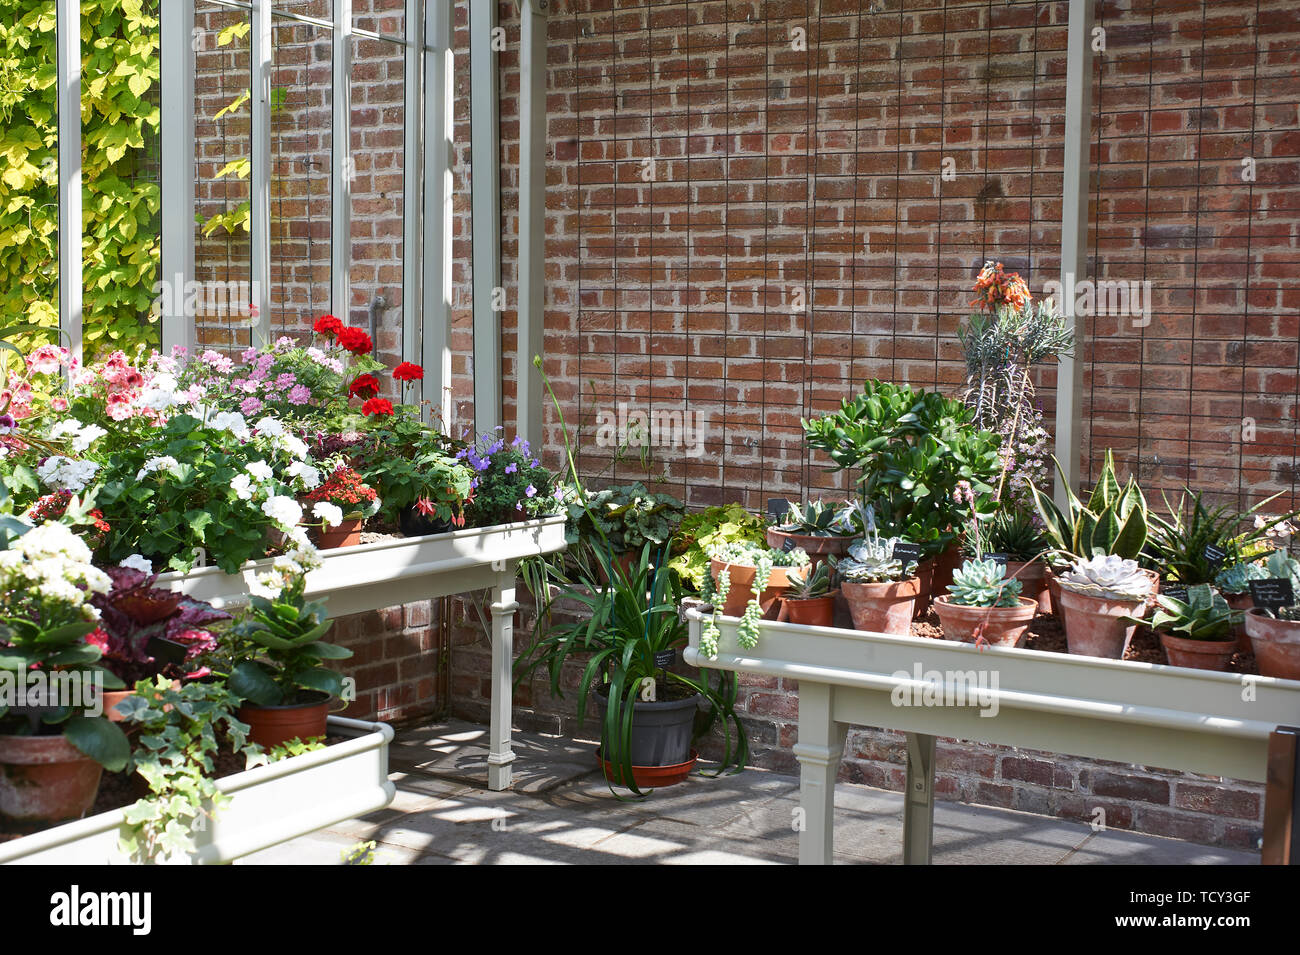 A greenhouse full of summer flowering plants in the bright sunshine at Holehird Gardens, Windermere, Cumbria, UK, GB - Stock Image